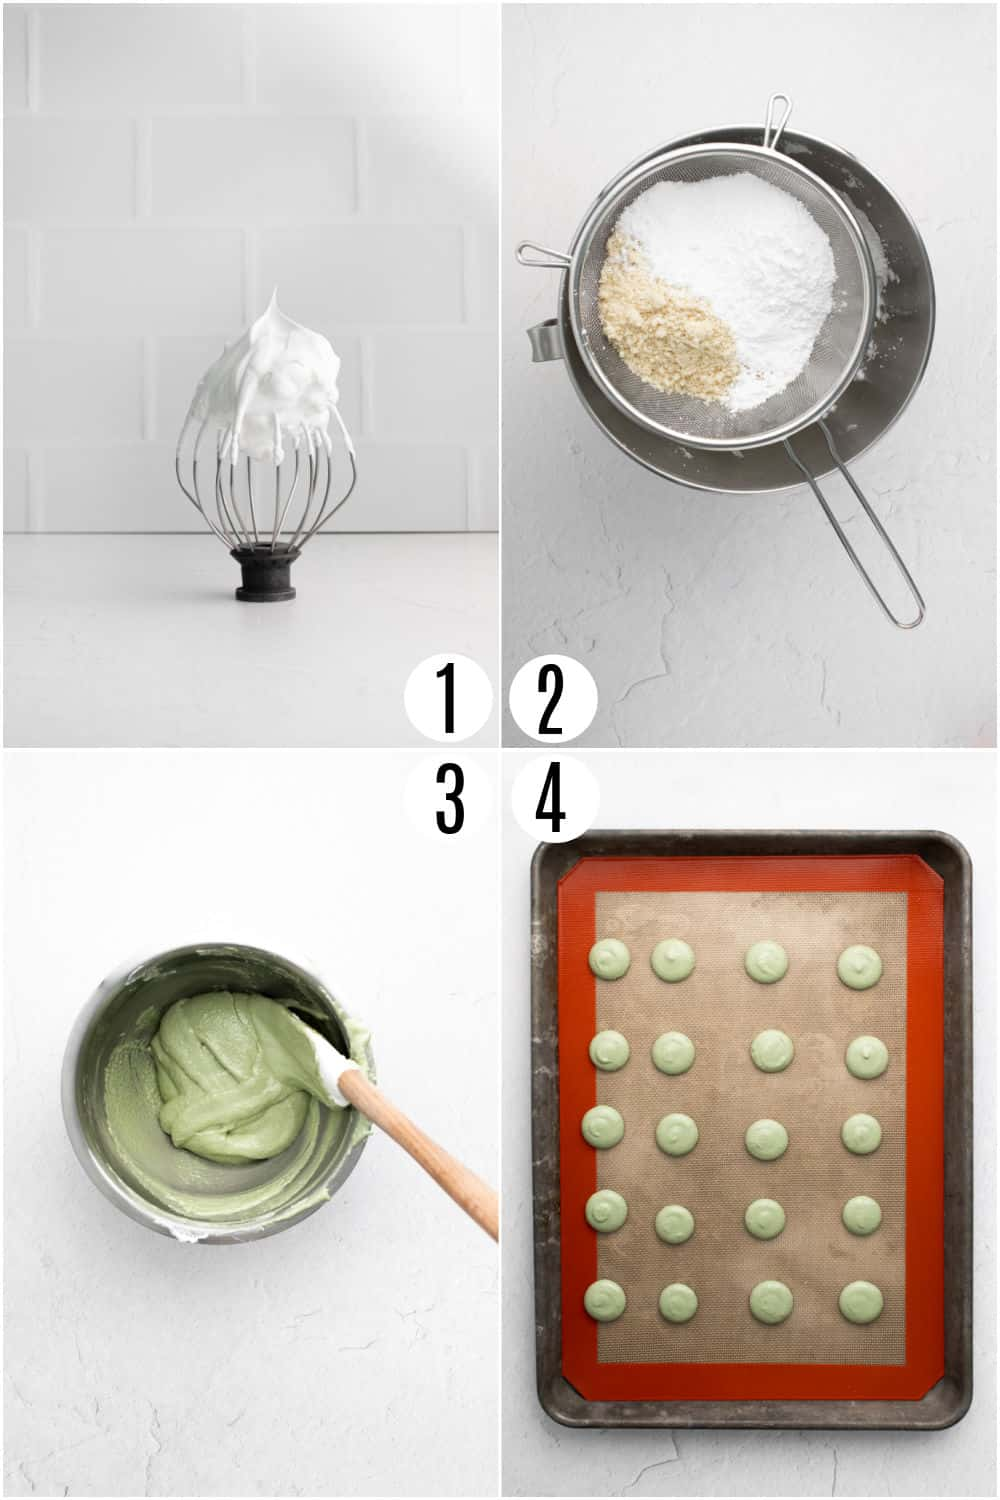 Step by step photos showing how to make pistachio macarons.